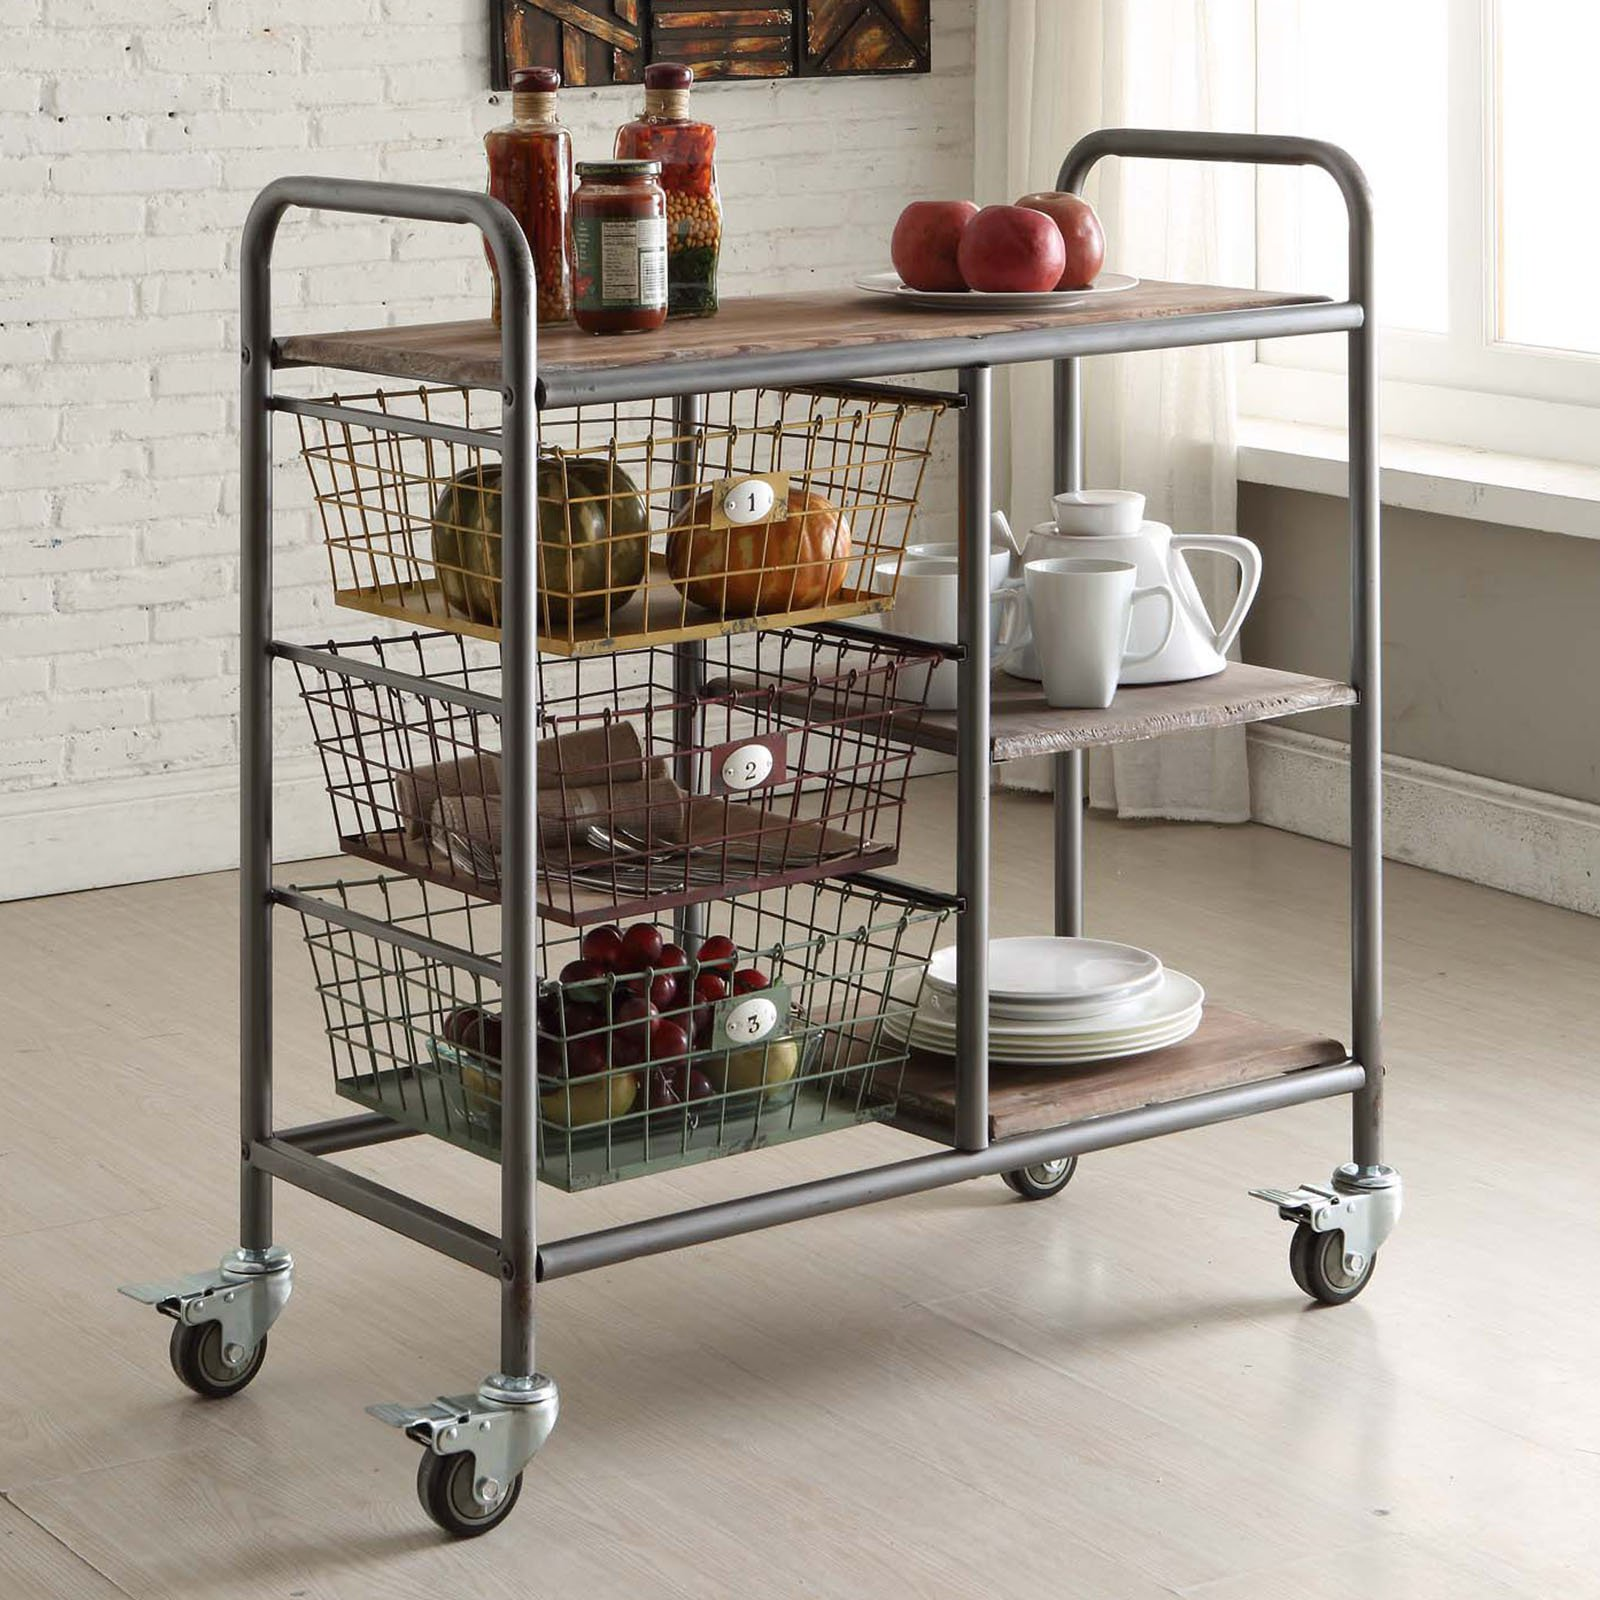 4D Concepts Urban Collection Kitchen Trolley